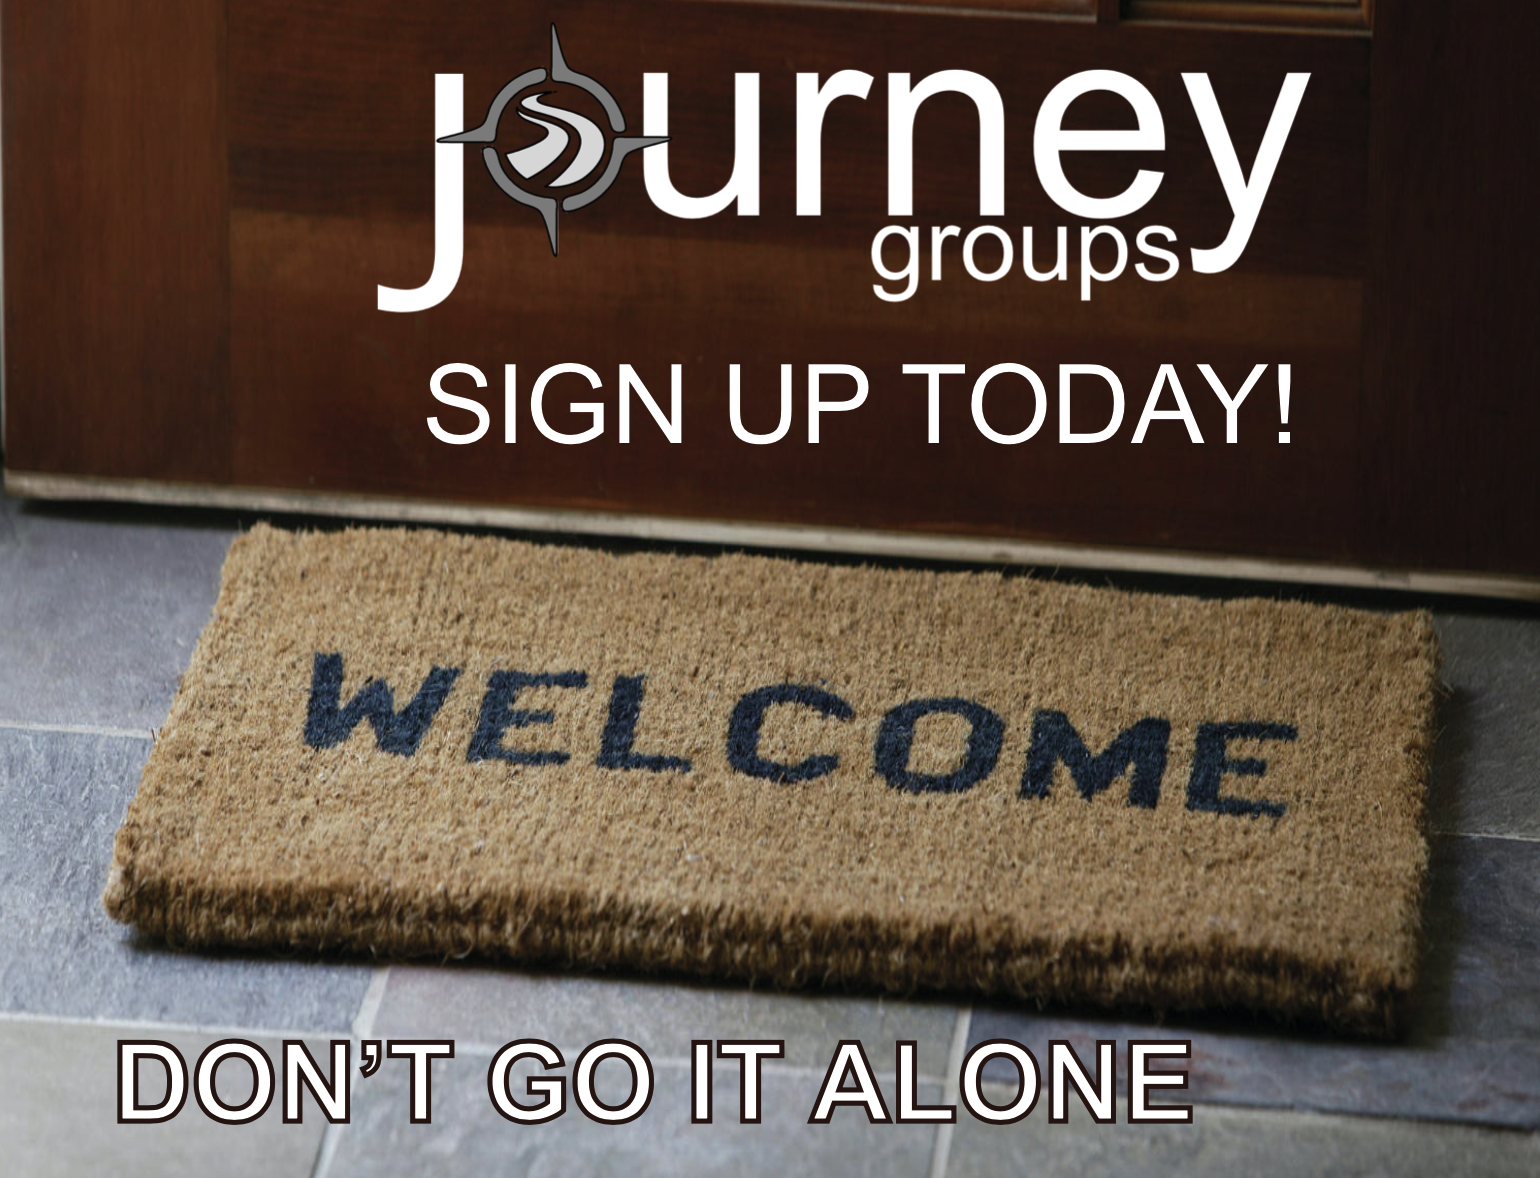 Journey Group Sign Up Begins Sunday! - Don't do life alone! Become part of a Journey Group. We have 17 new groups gathering during the month of November for a 4 week sermon based small group on different days, times and at different locations. Don't miss out on an opportunity to try out small groups. Come get signed up Sunday.